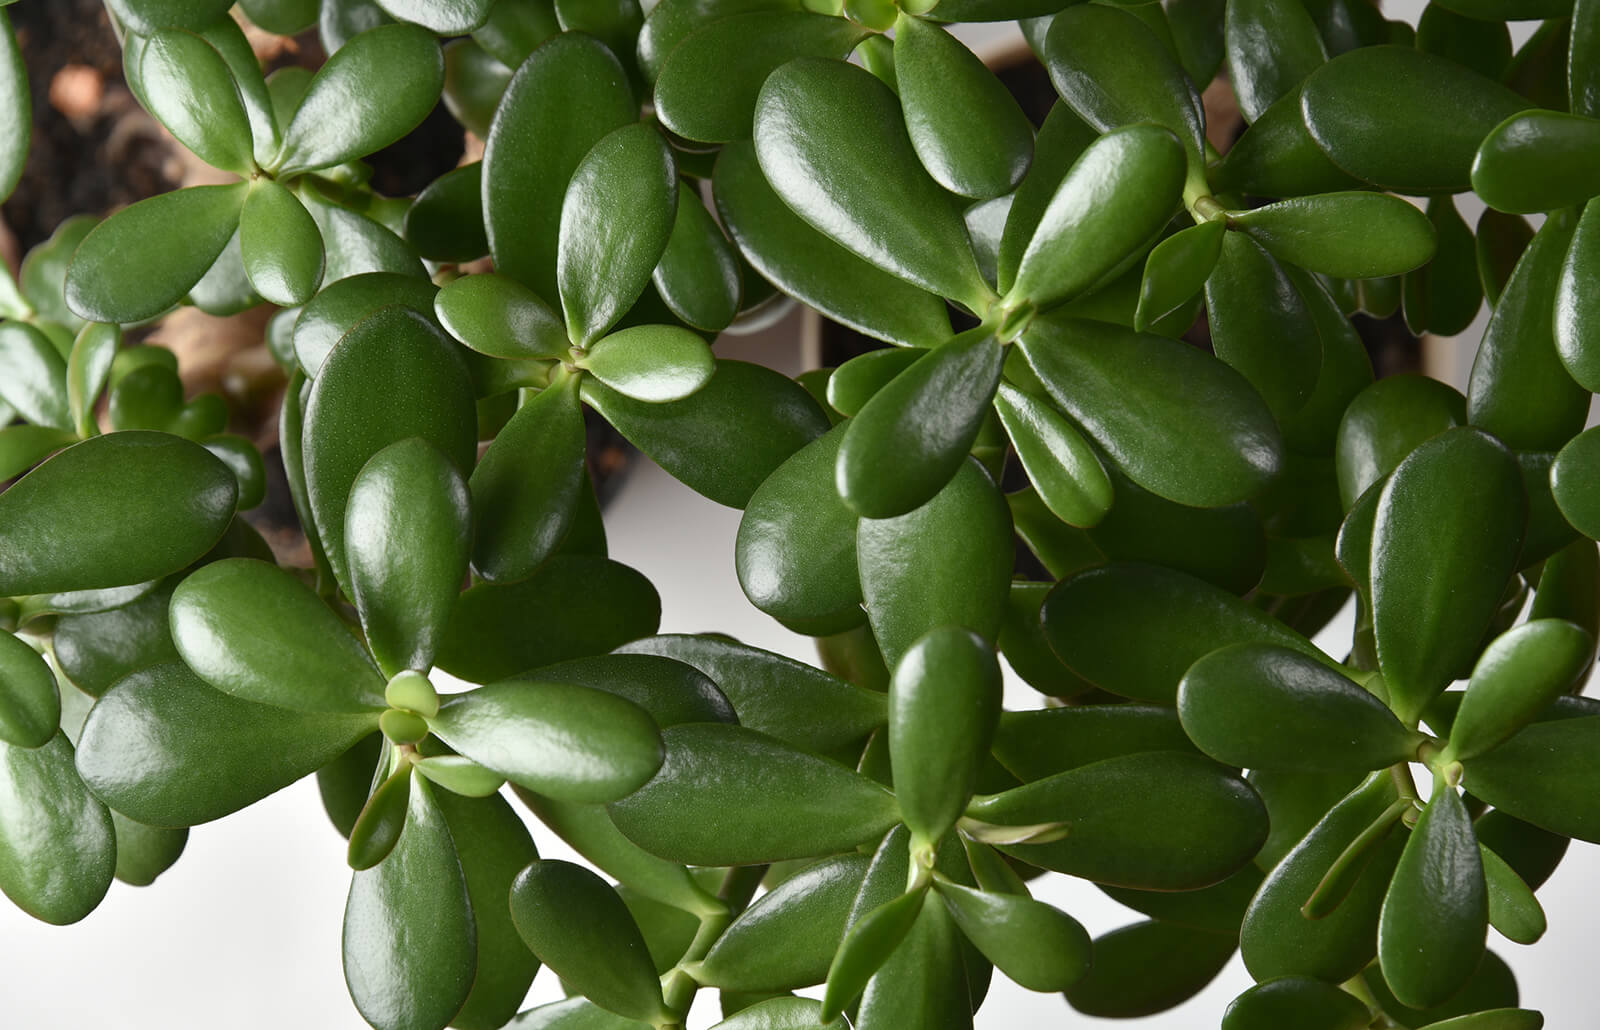 Feng Schui How To Use Jade Plants In Feng Shui Lovetoknow